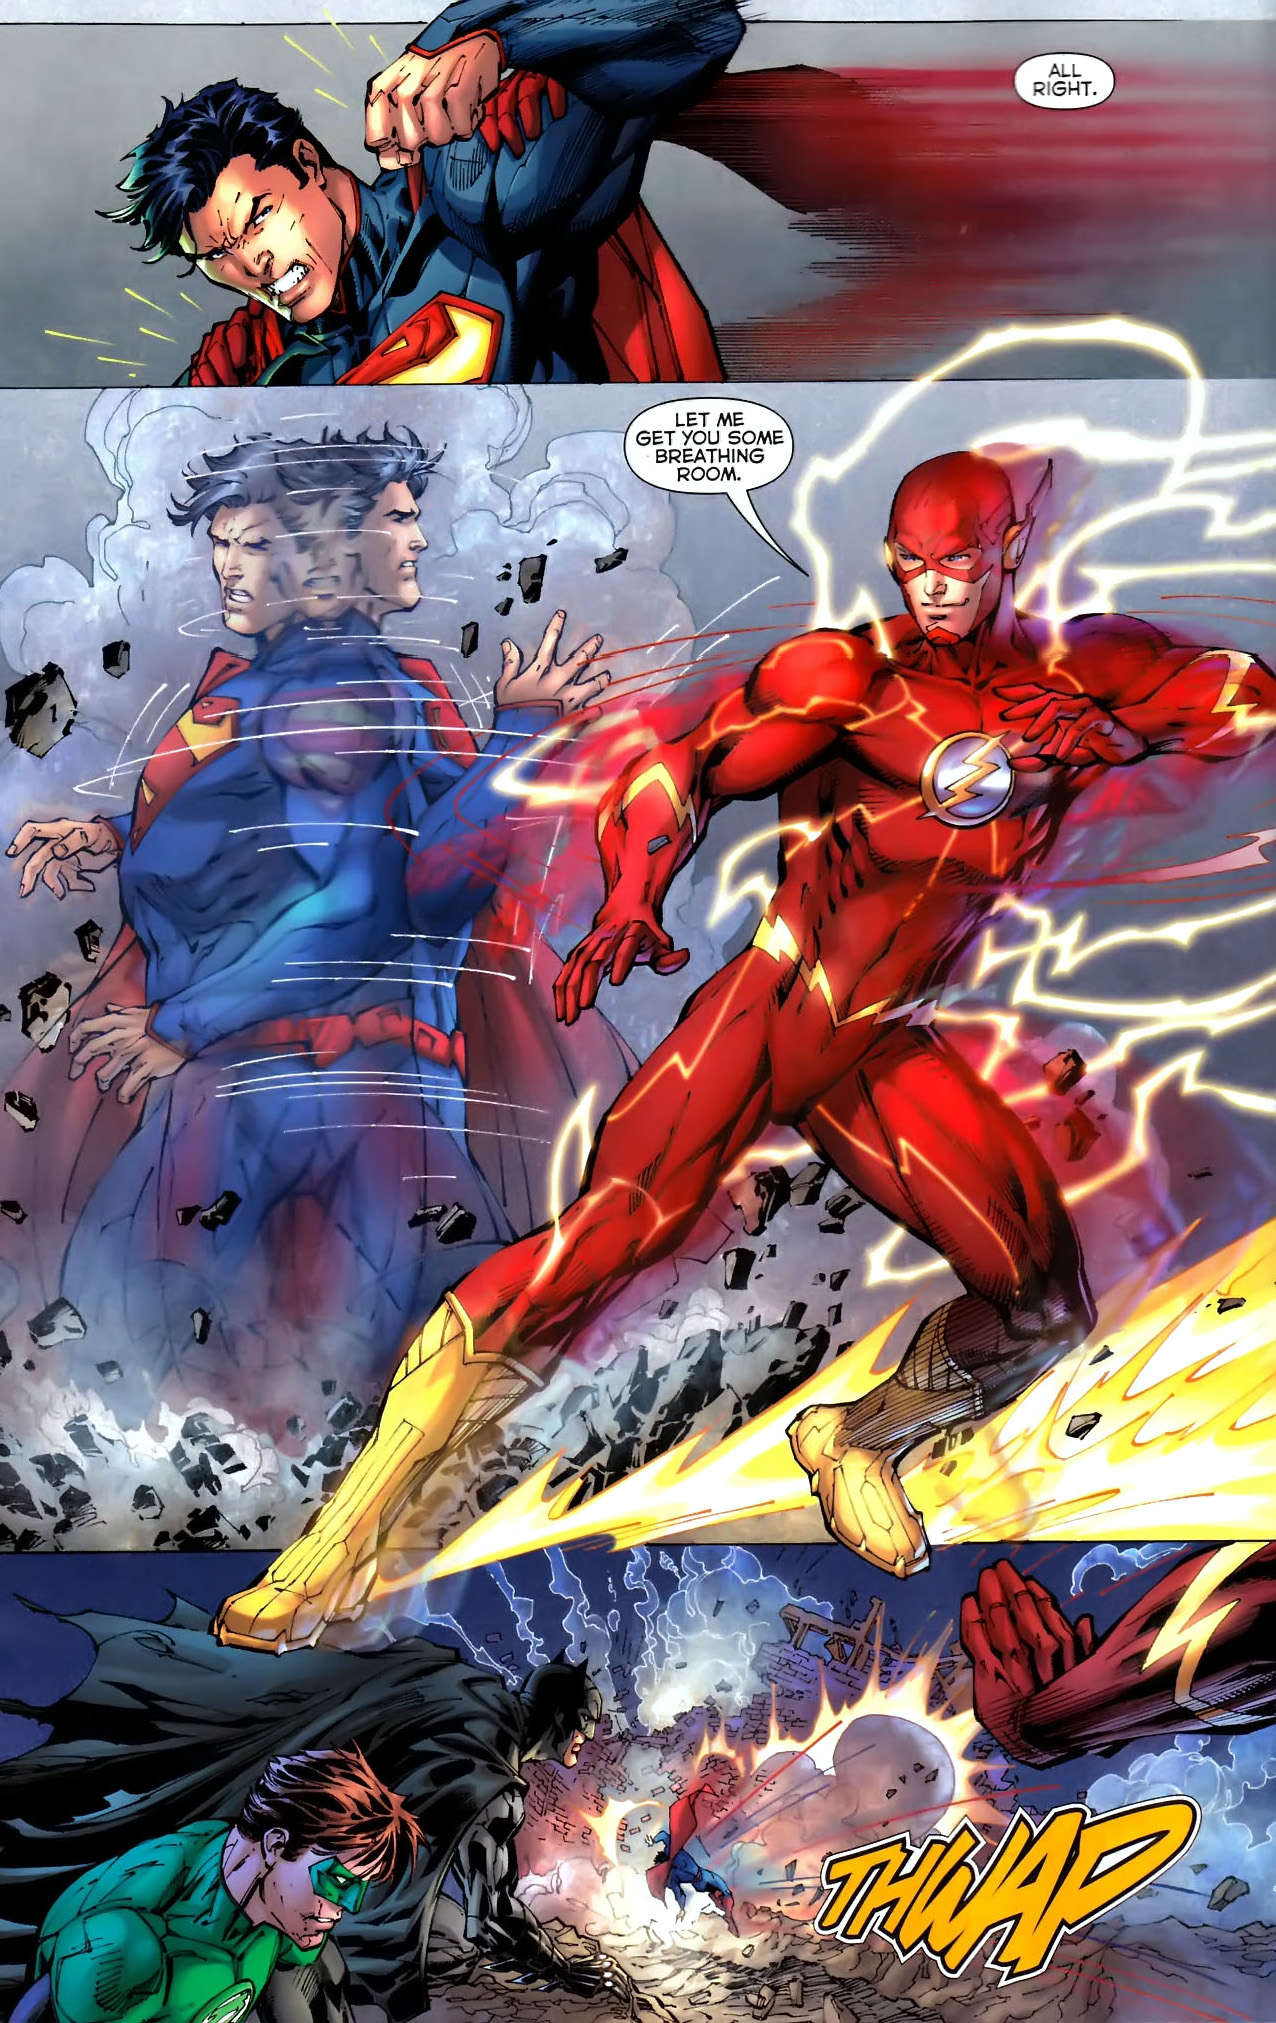 52 Photos 37 Reviews: Superman And The Flash's First Meeting (New 52)